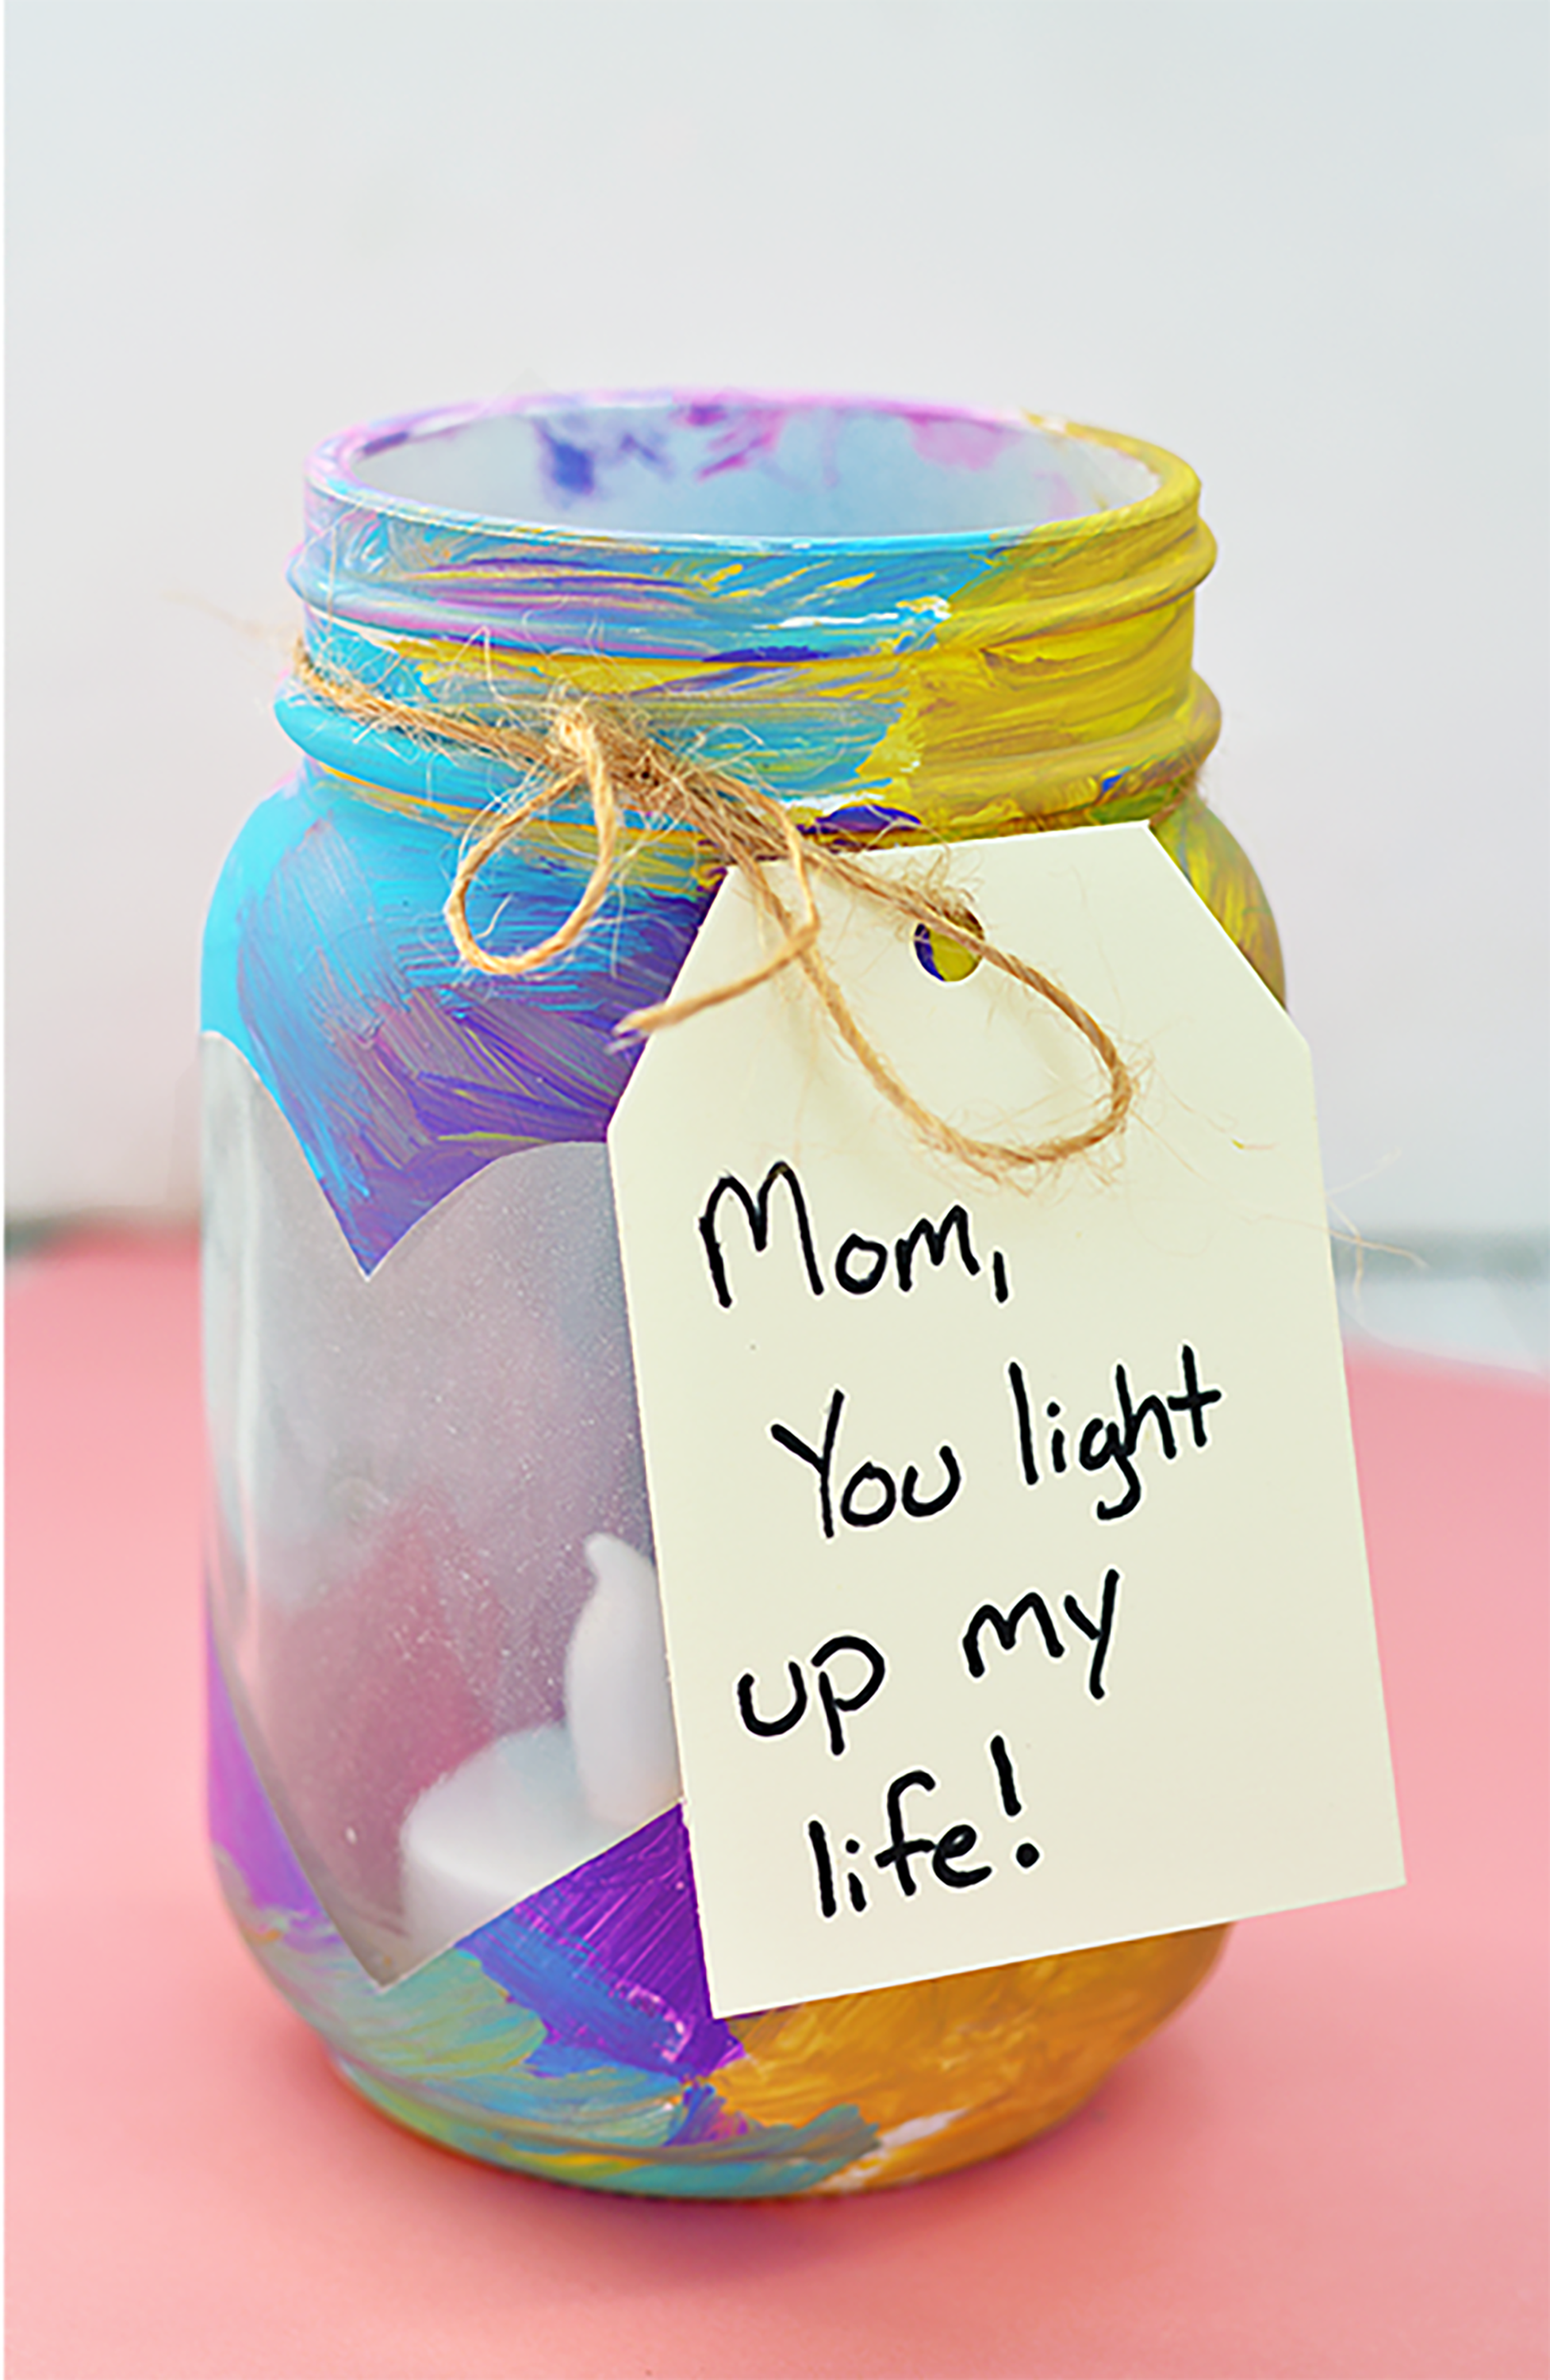 ce837a4d8f12 40 Mother s Day Crafts - DIY Ideas for Mother s Day Gifts Kids Can Make